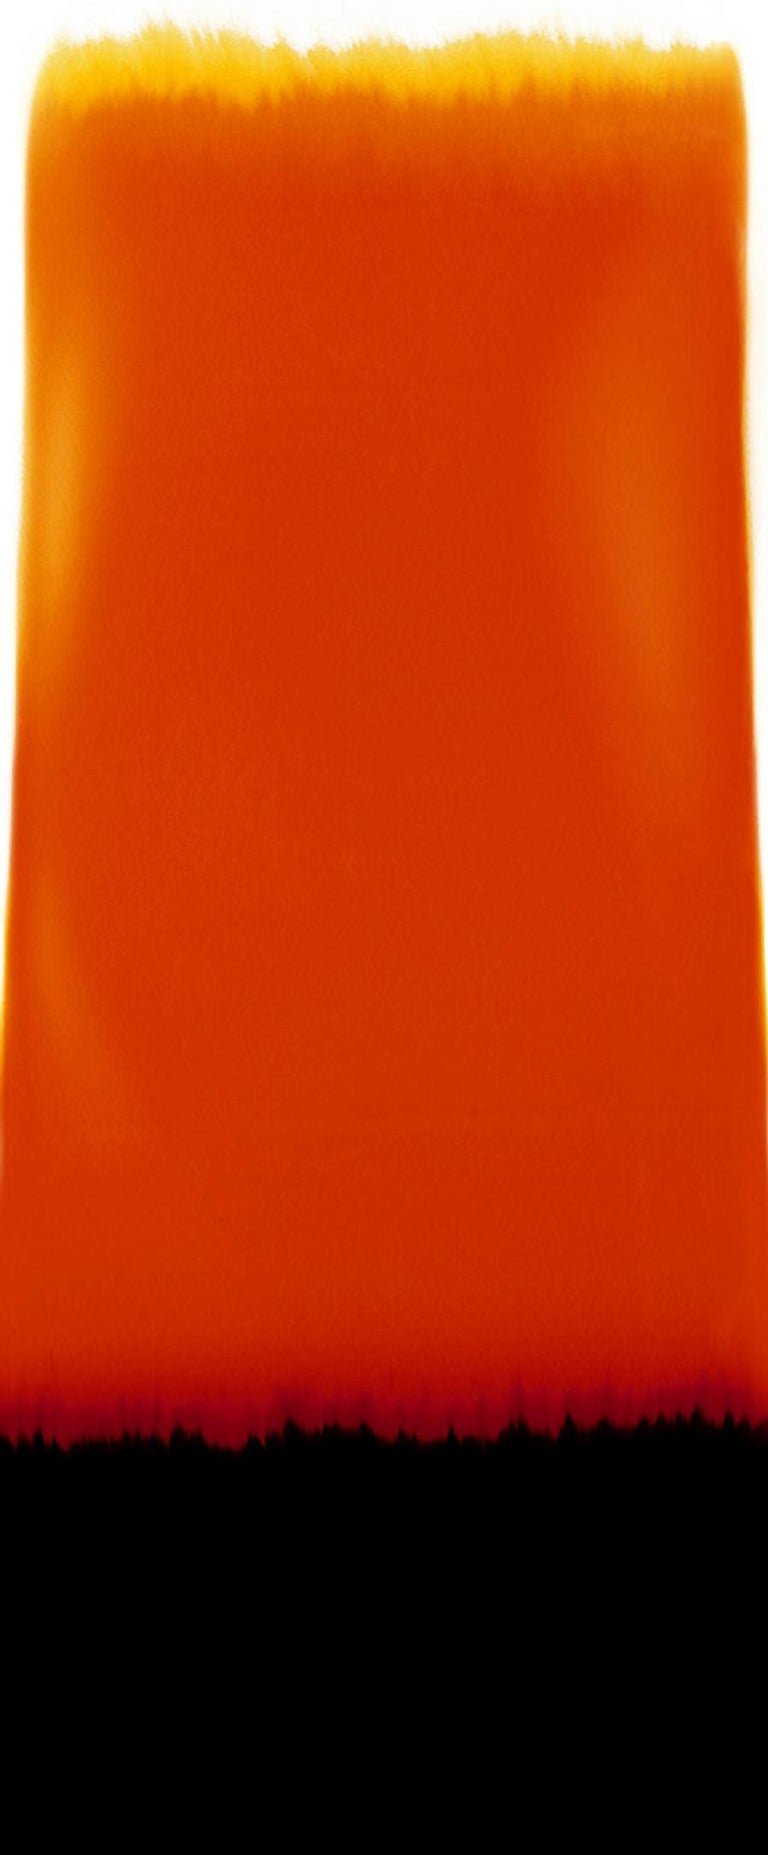 Silvio Wolf Color Photograph - Horizon F, abstract photography,  orange and black